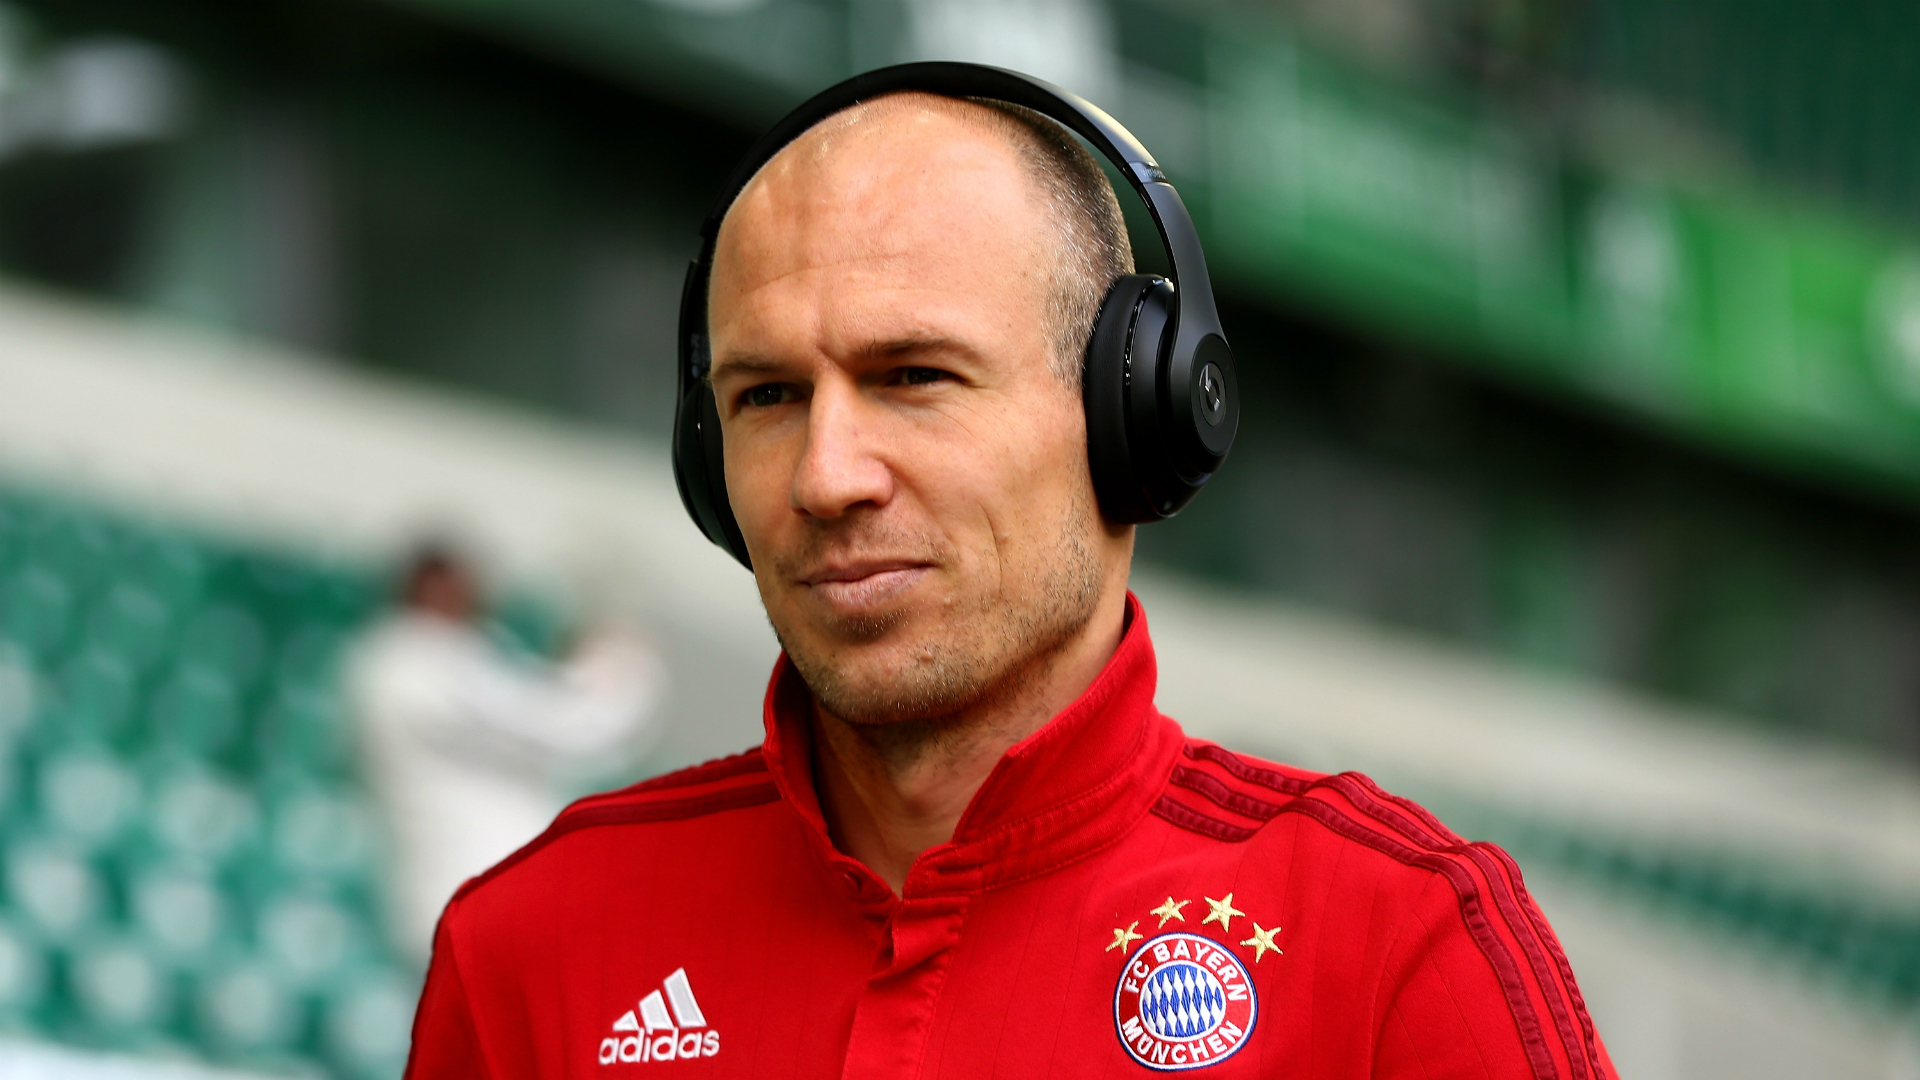 'Robben's style to blame for his injuries'